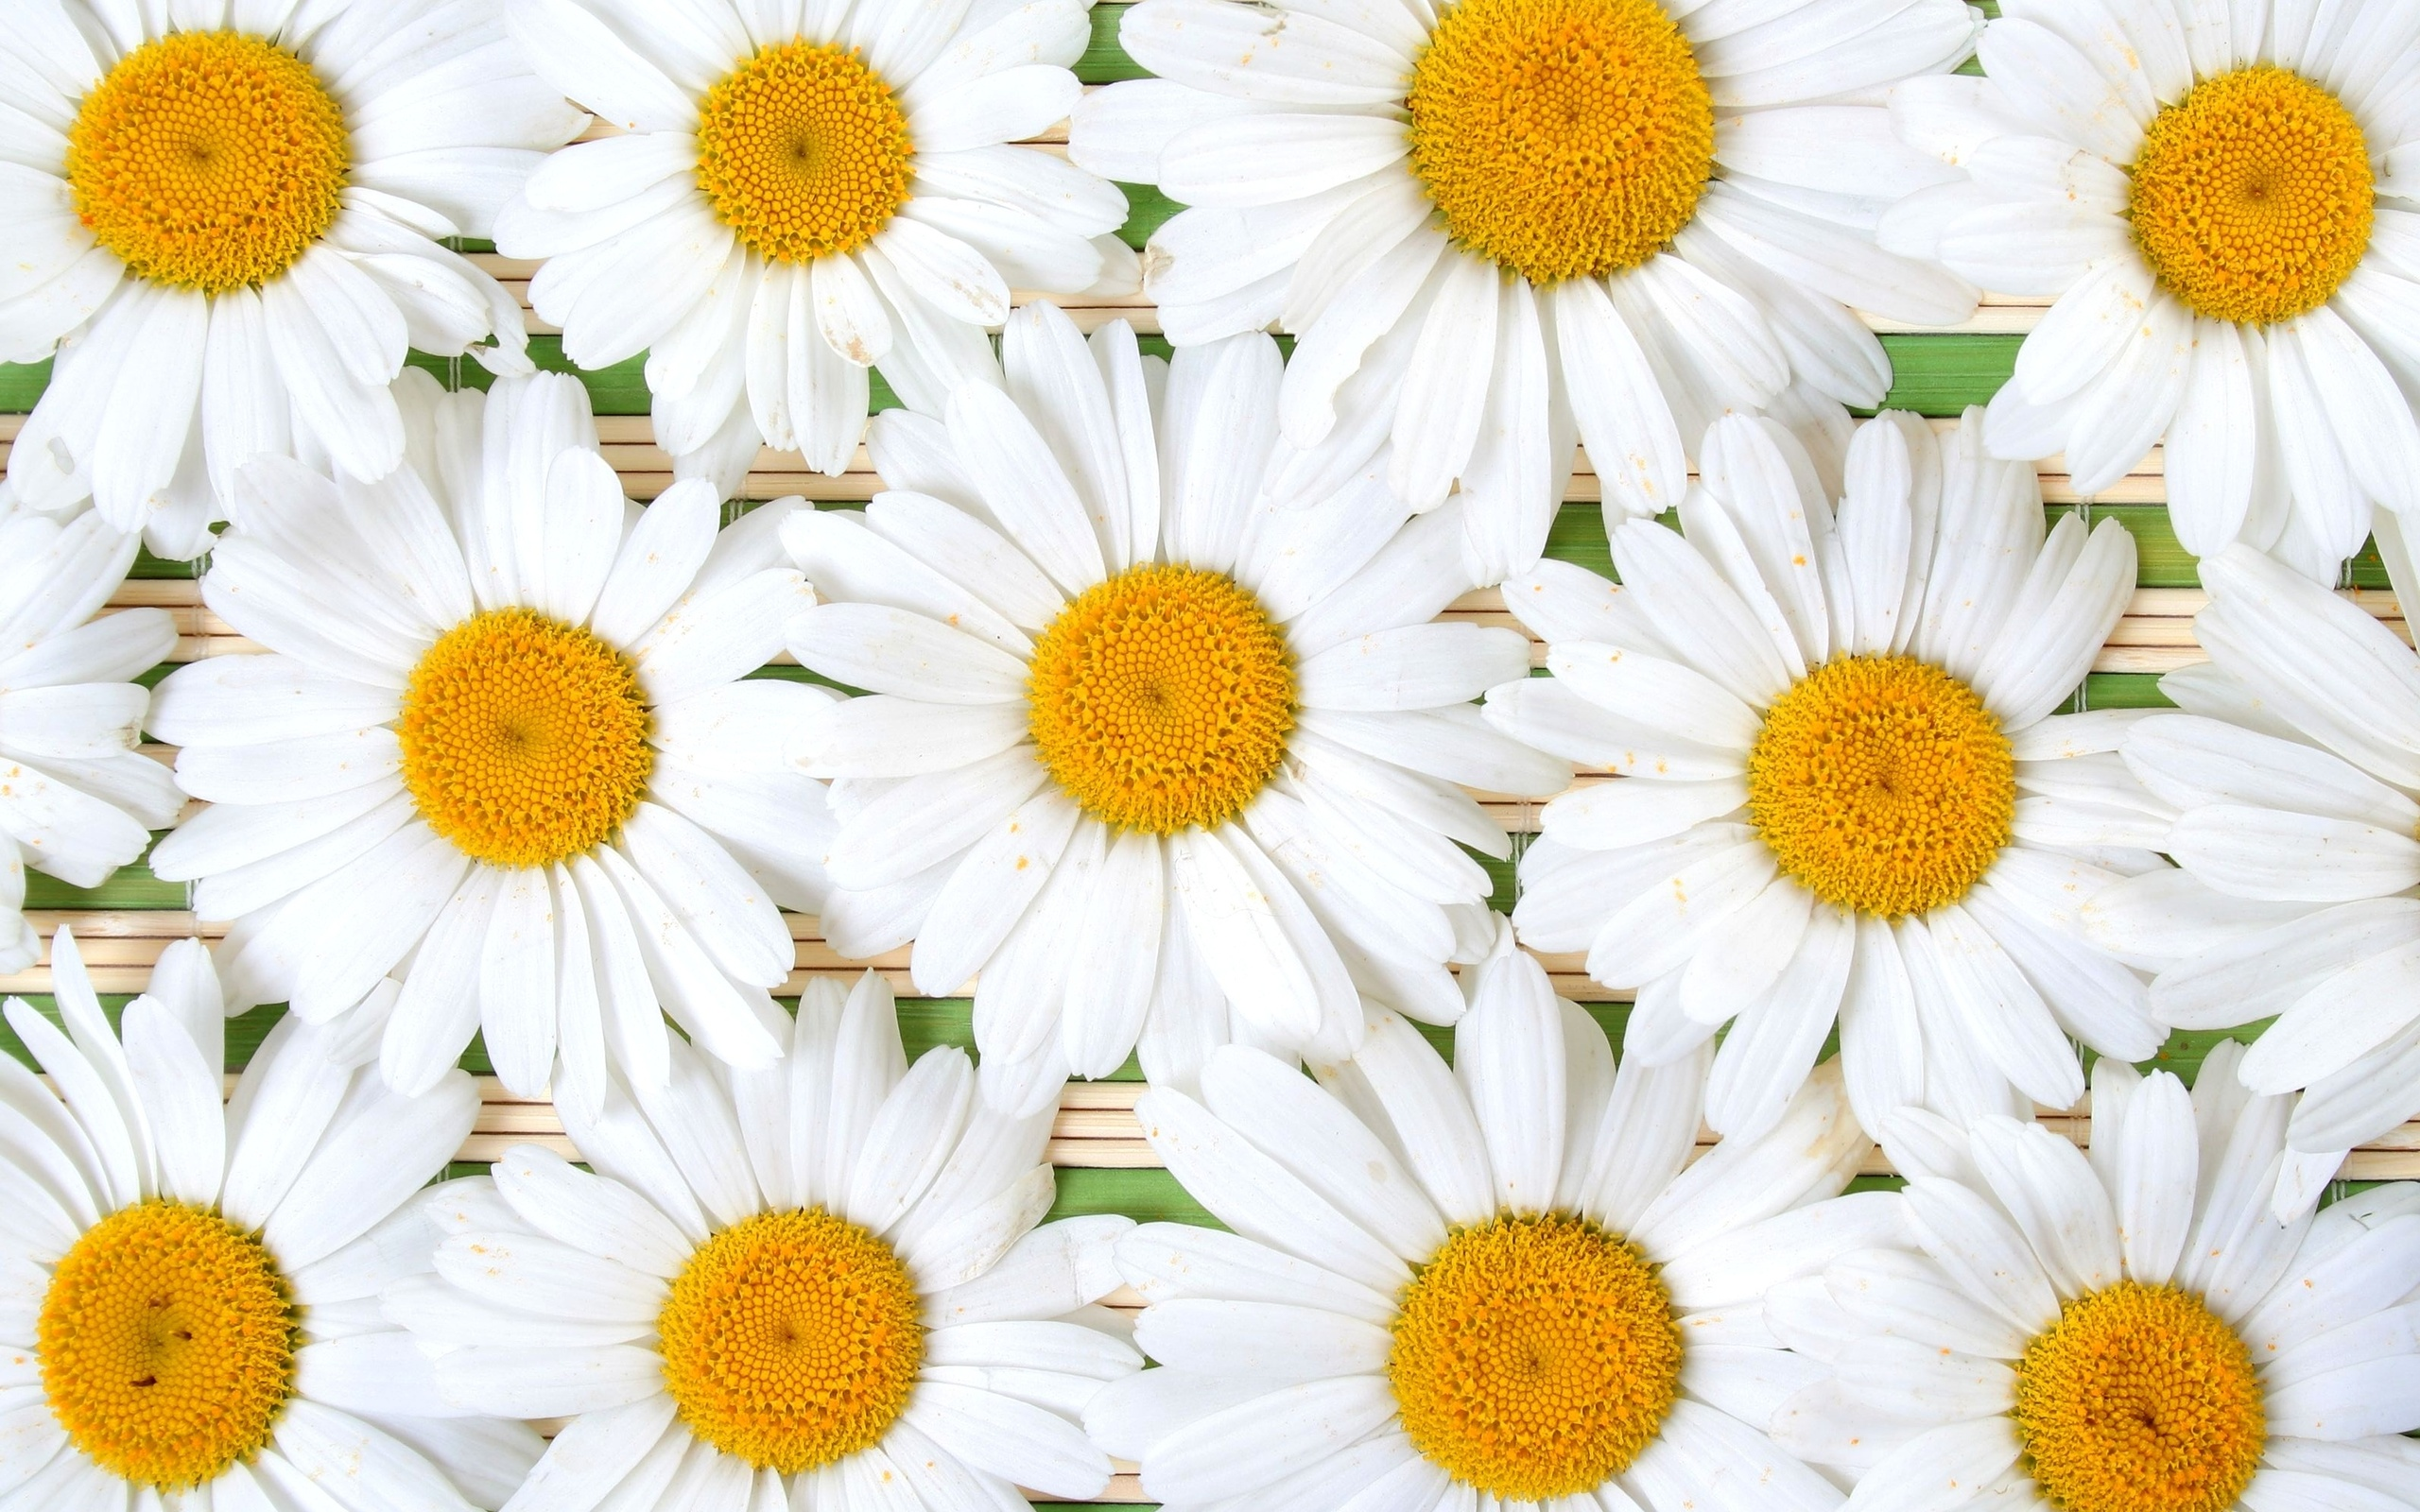 The Yellow Wallpaper Symbolism Quotes Daisy Hd Wallpaper Background Image 2560x1600 Id